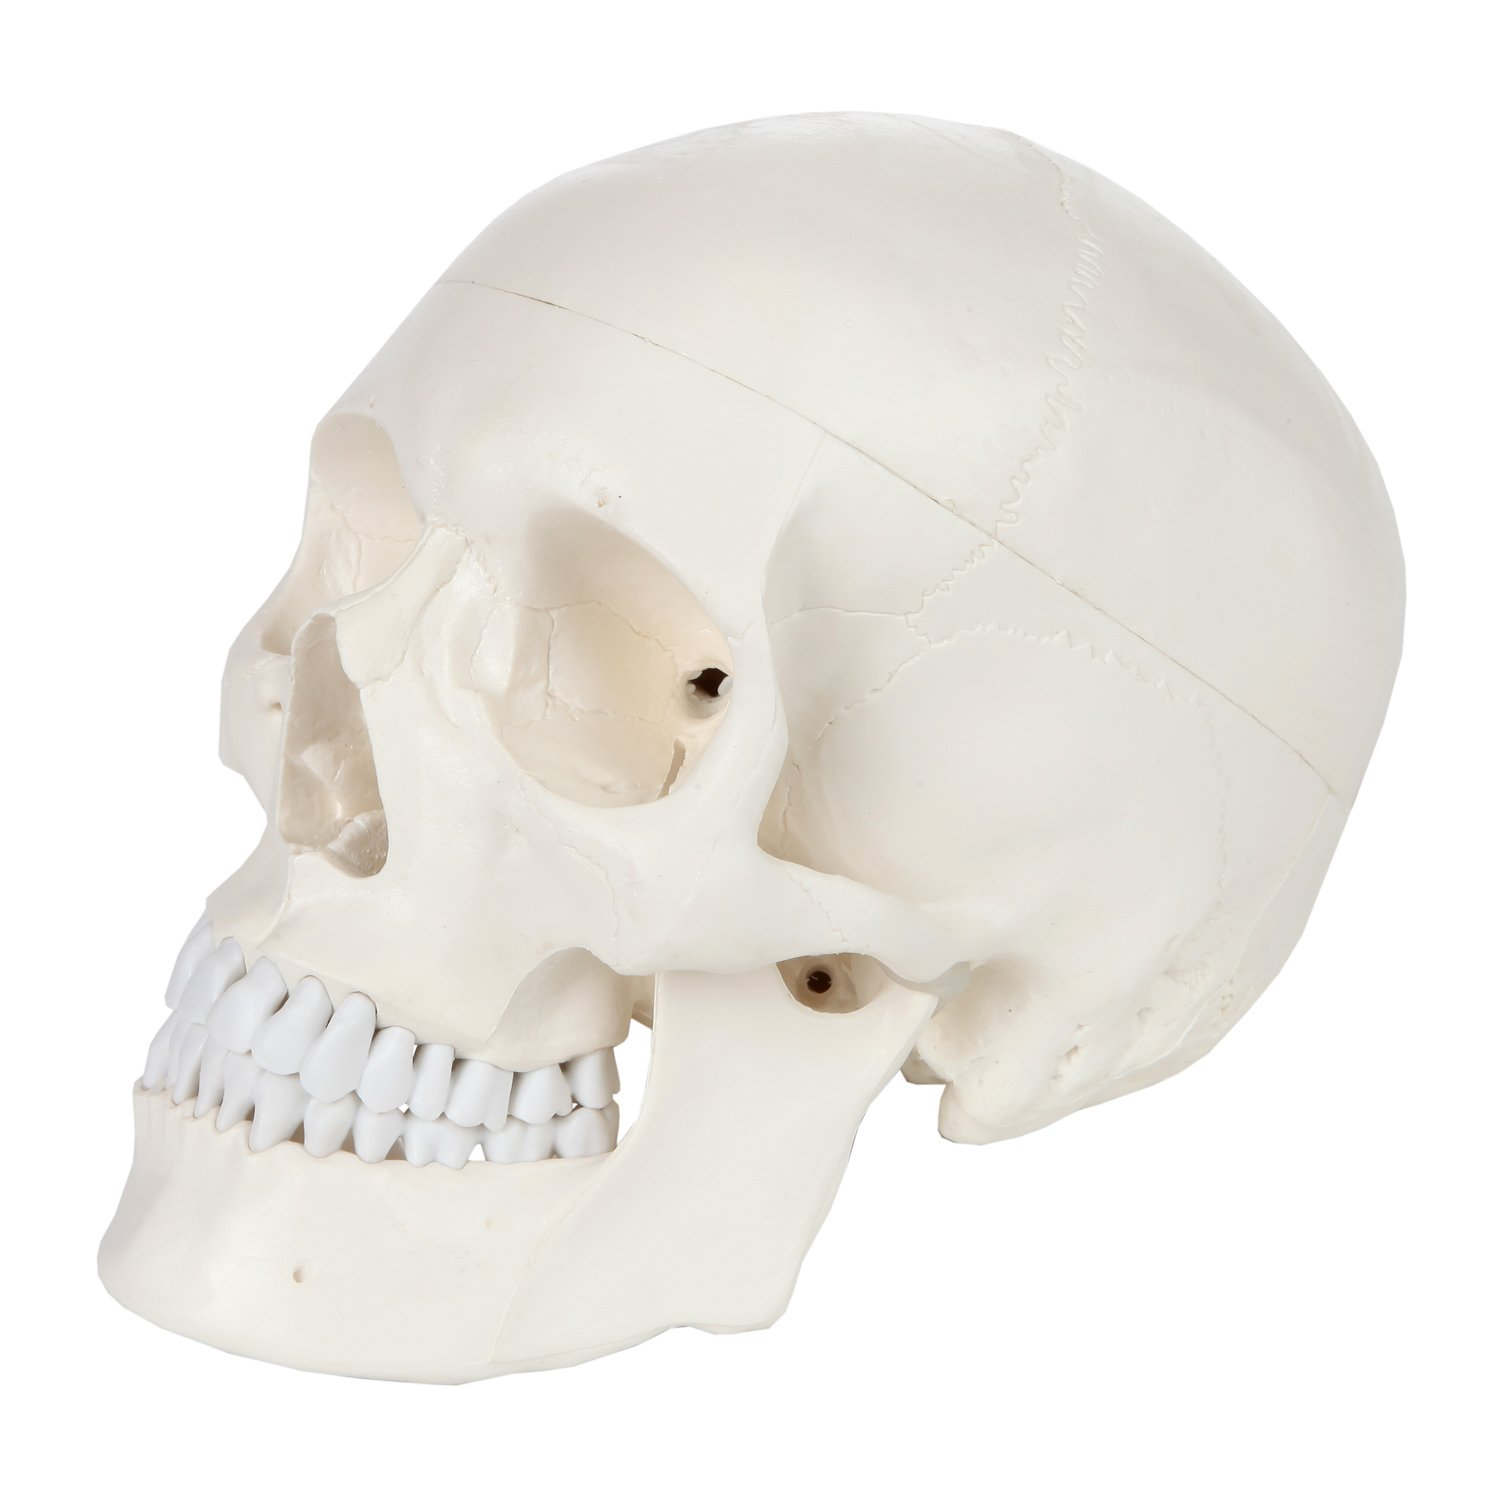 Axis Scientific 3 Part Human Skull Anatomy Model Life Size Anatomy